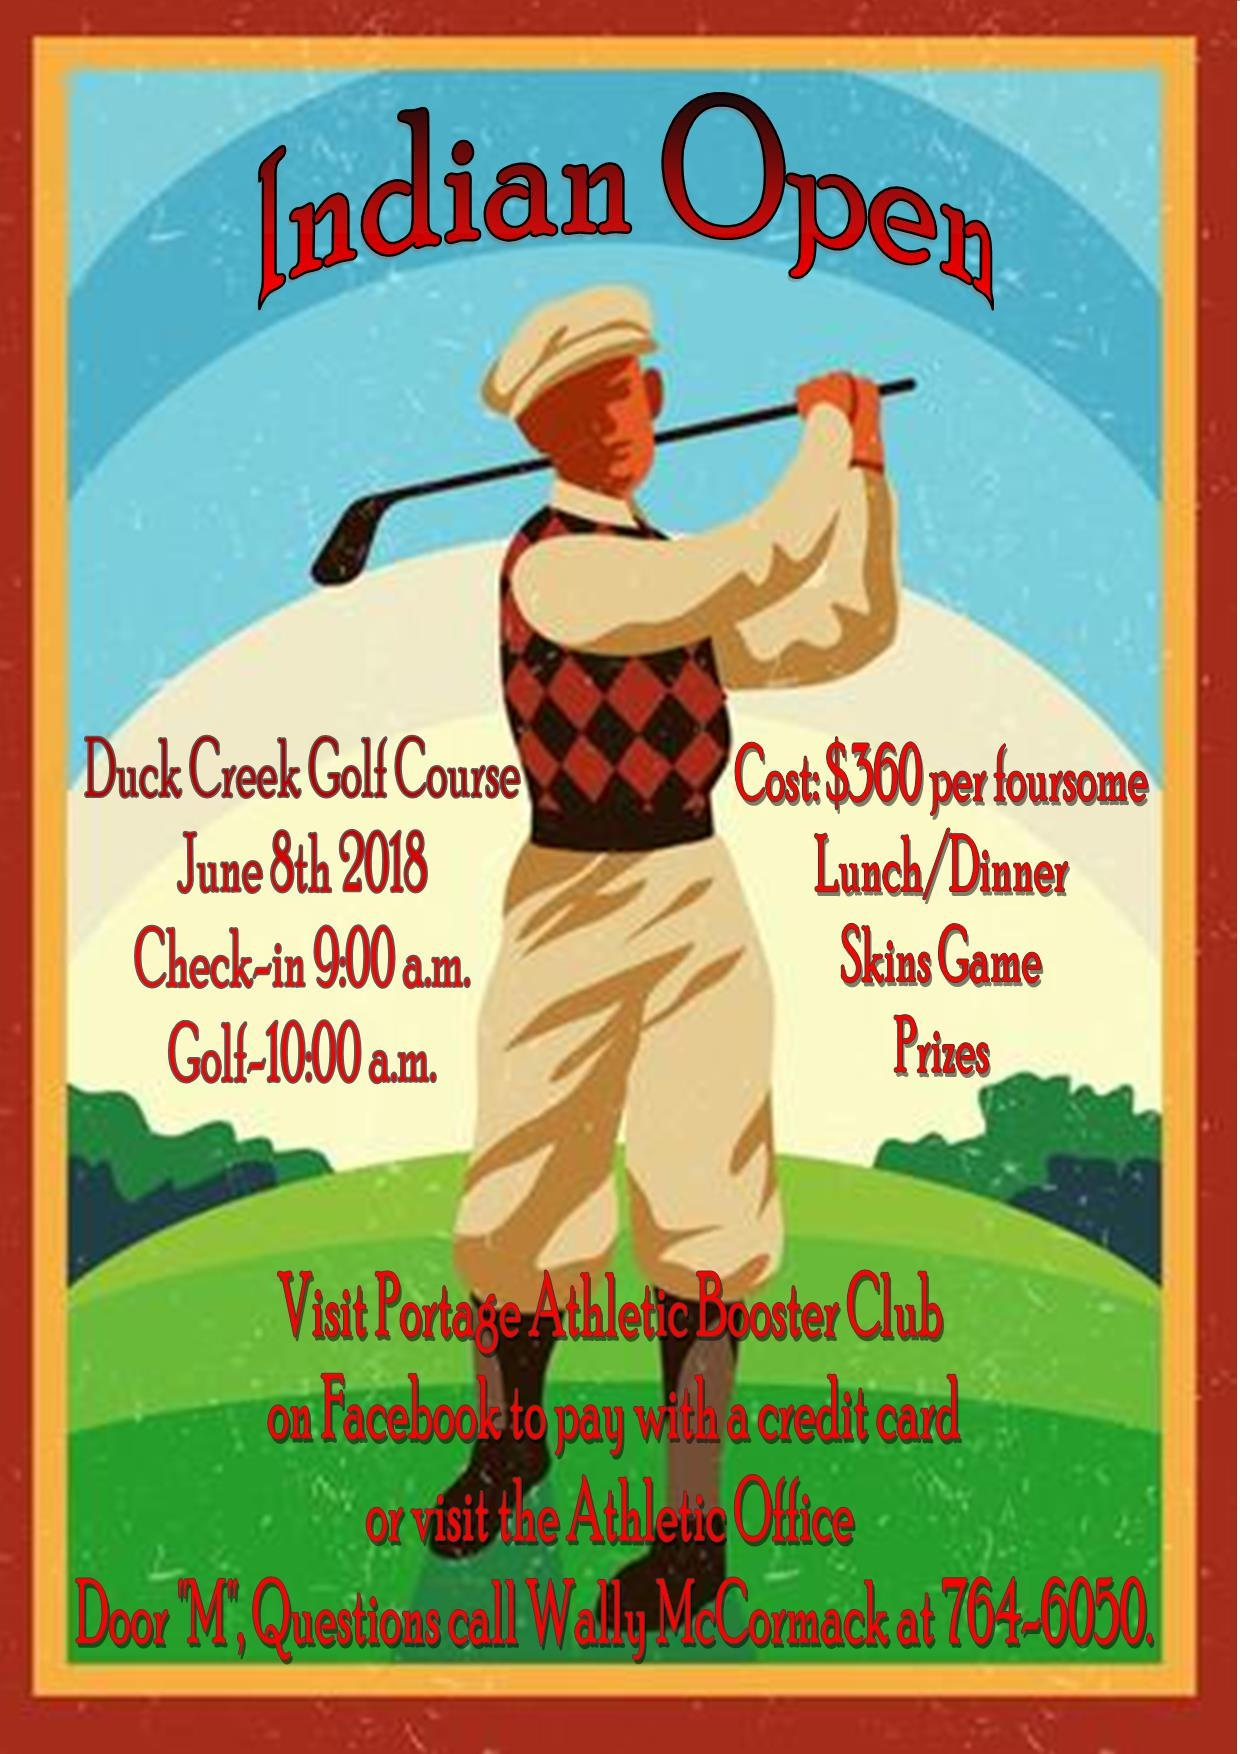 """Indian Open"" Golf Outing June 8th"